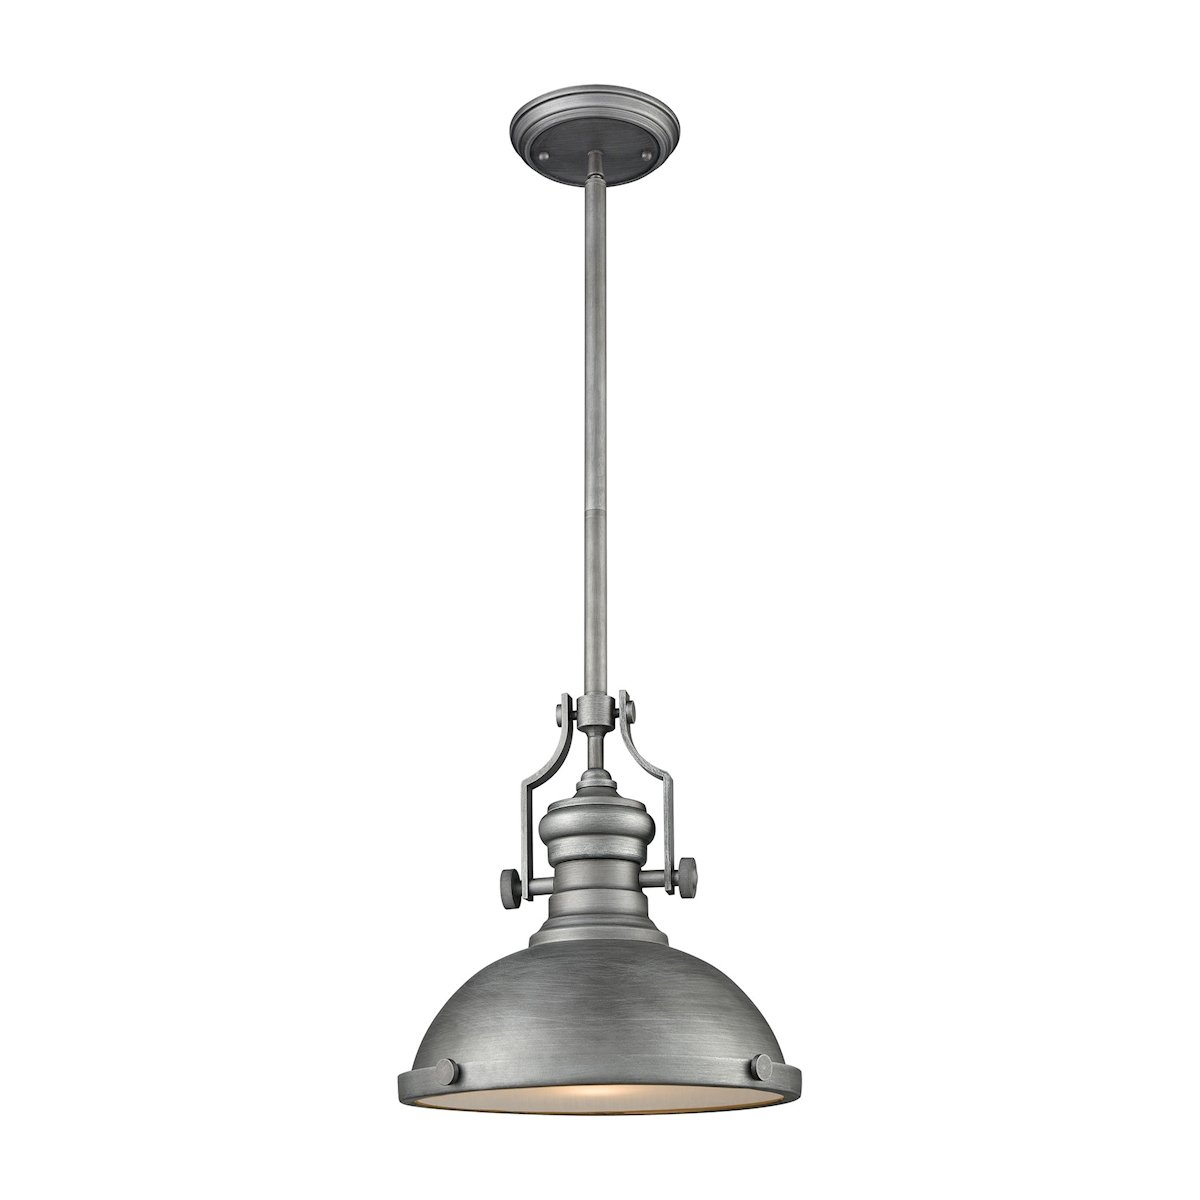 Chadwick light pendant in weathered zinc with frosted glass